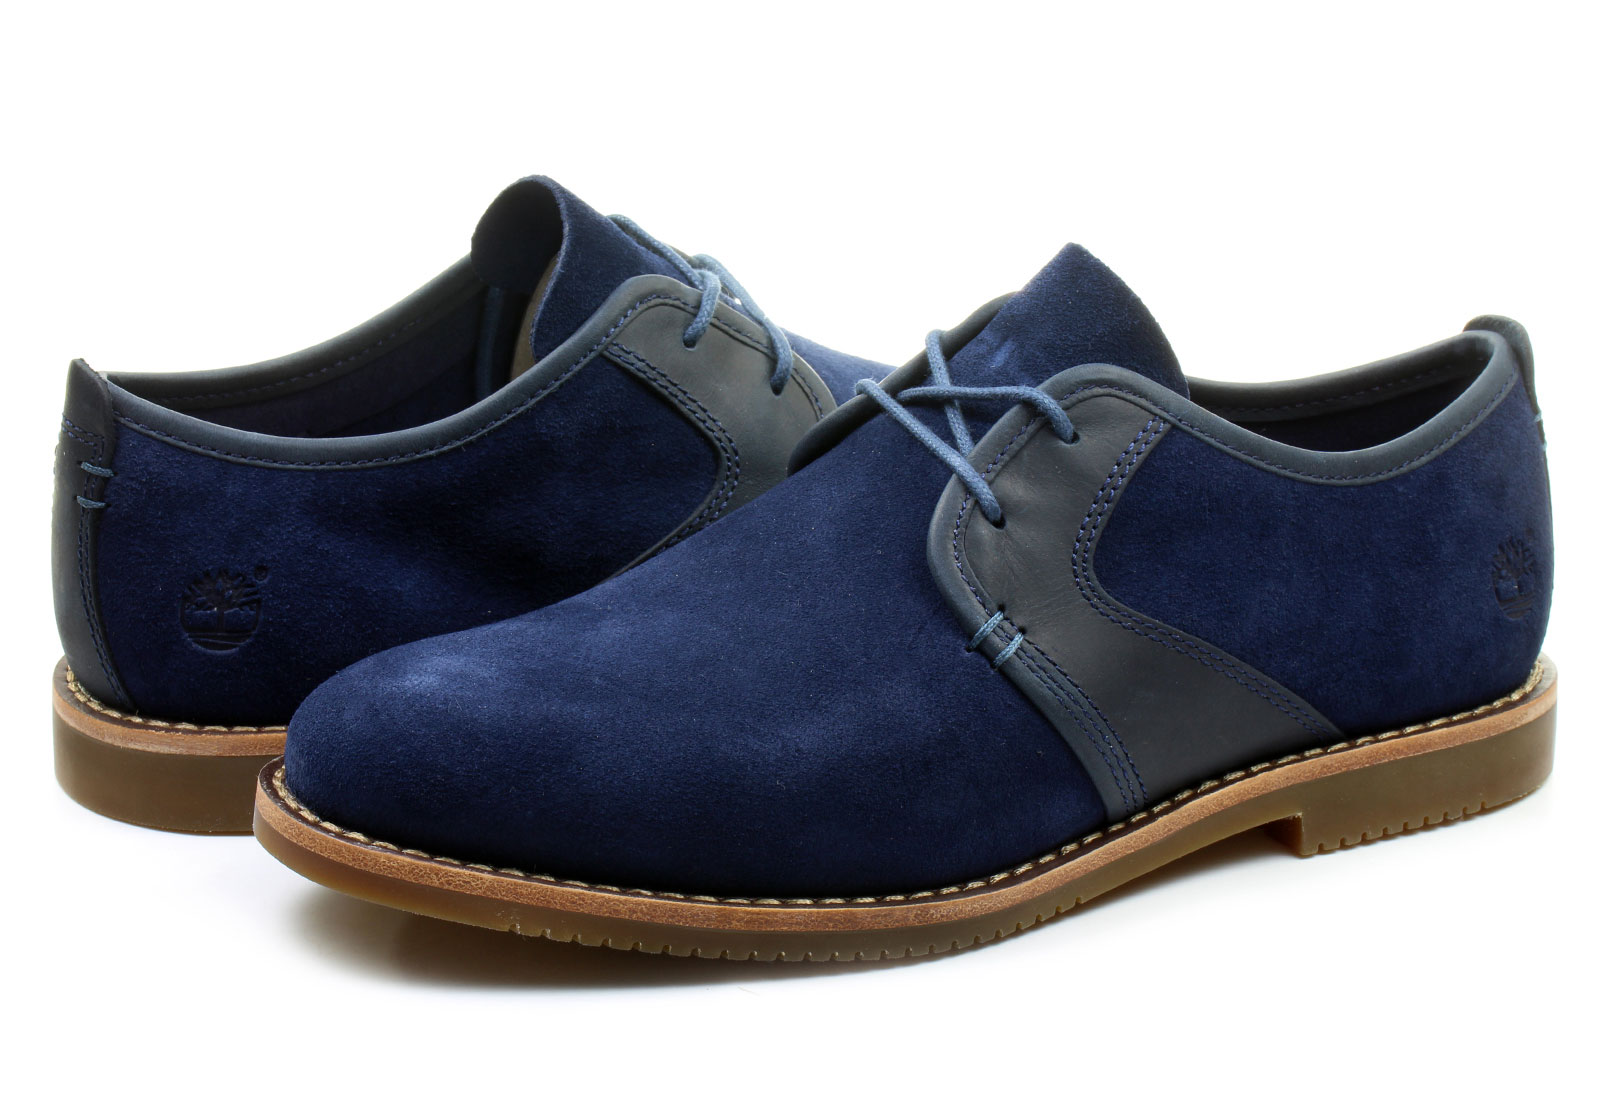 Timberland Shoes - Brooklyn Park - a14t8-nvy